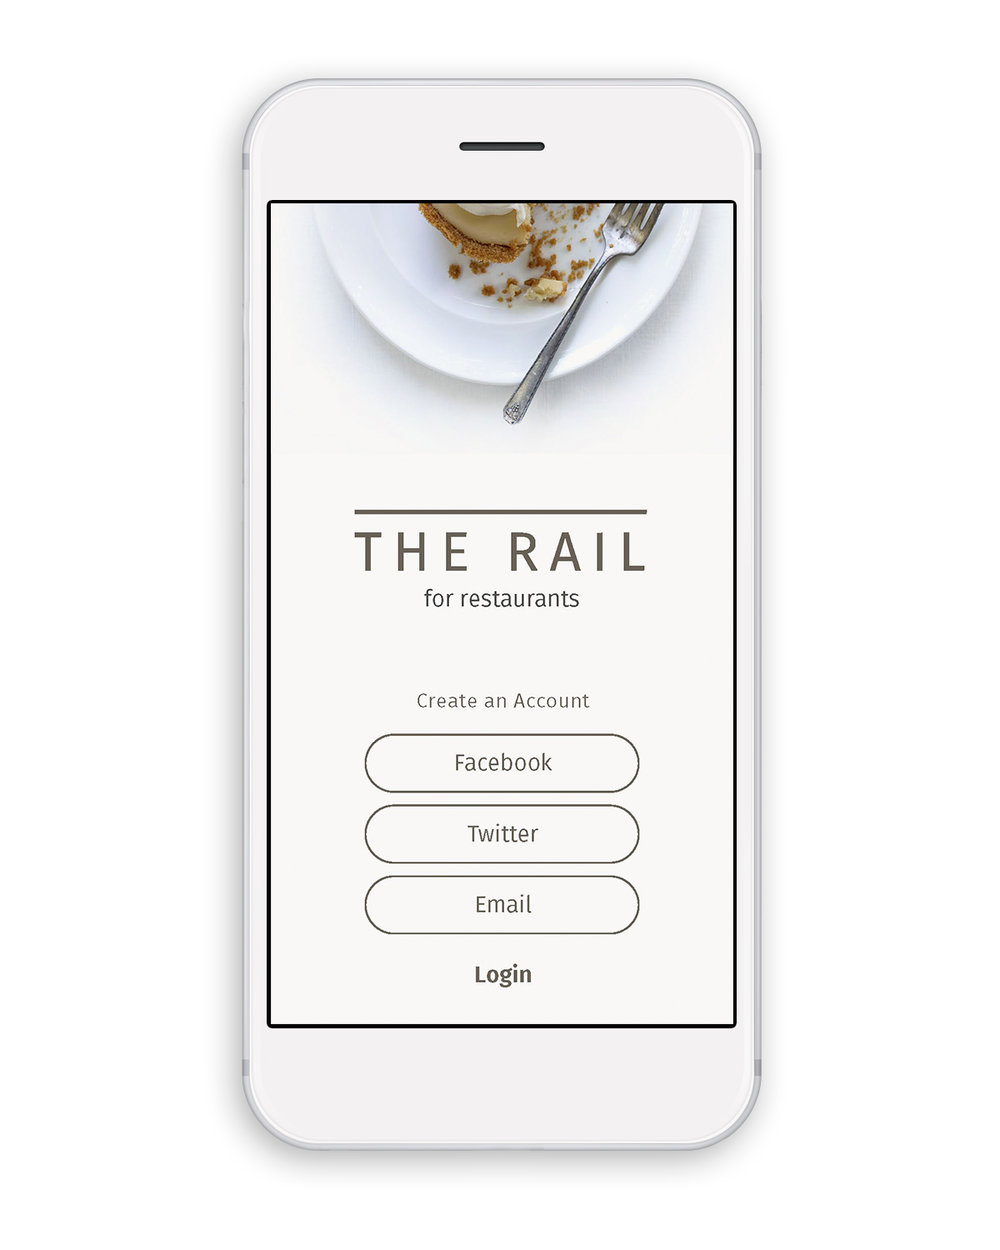 WBCG_TheRail_Phone2-2.jpg